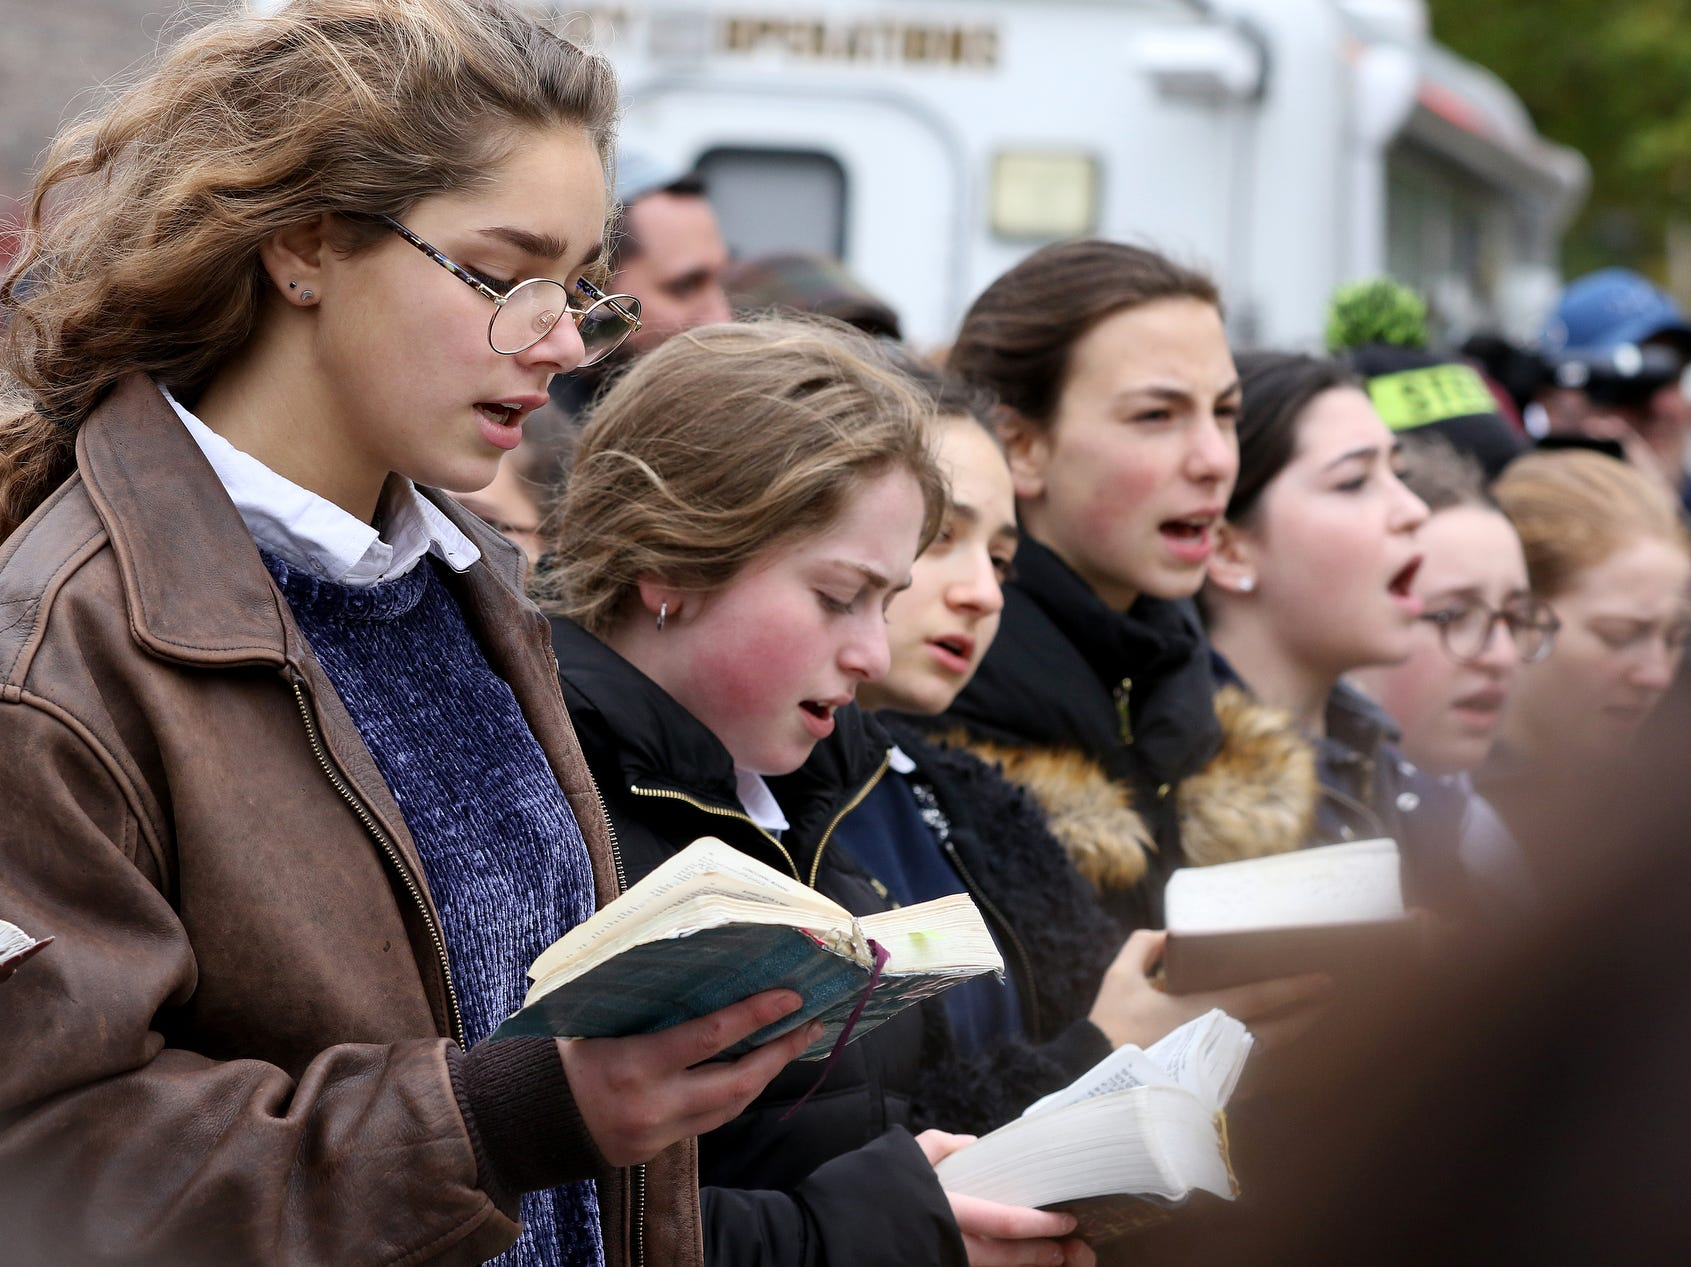 Students from Yeshiva Girls High School pray, on Oct. 29, 2018, outside of the Tree of Life Congregation Synagogue in  Pittsburgh, Pa. Robert Bowers allegedly screamed anti-Semitic epithets, as he opened fire on the congregants of Tree of Life during a service, law enforcement officials said. Eleven worshippers were killed and  six other people were wounded Saturday.